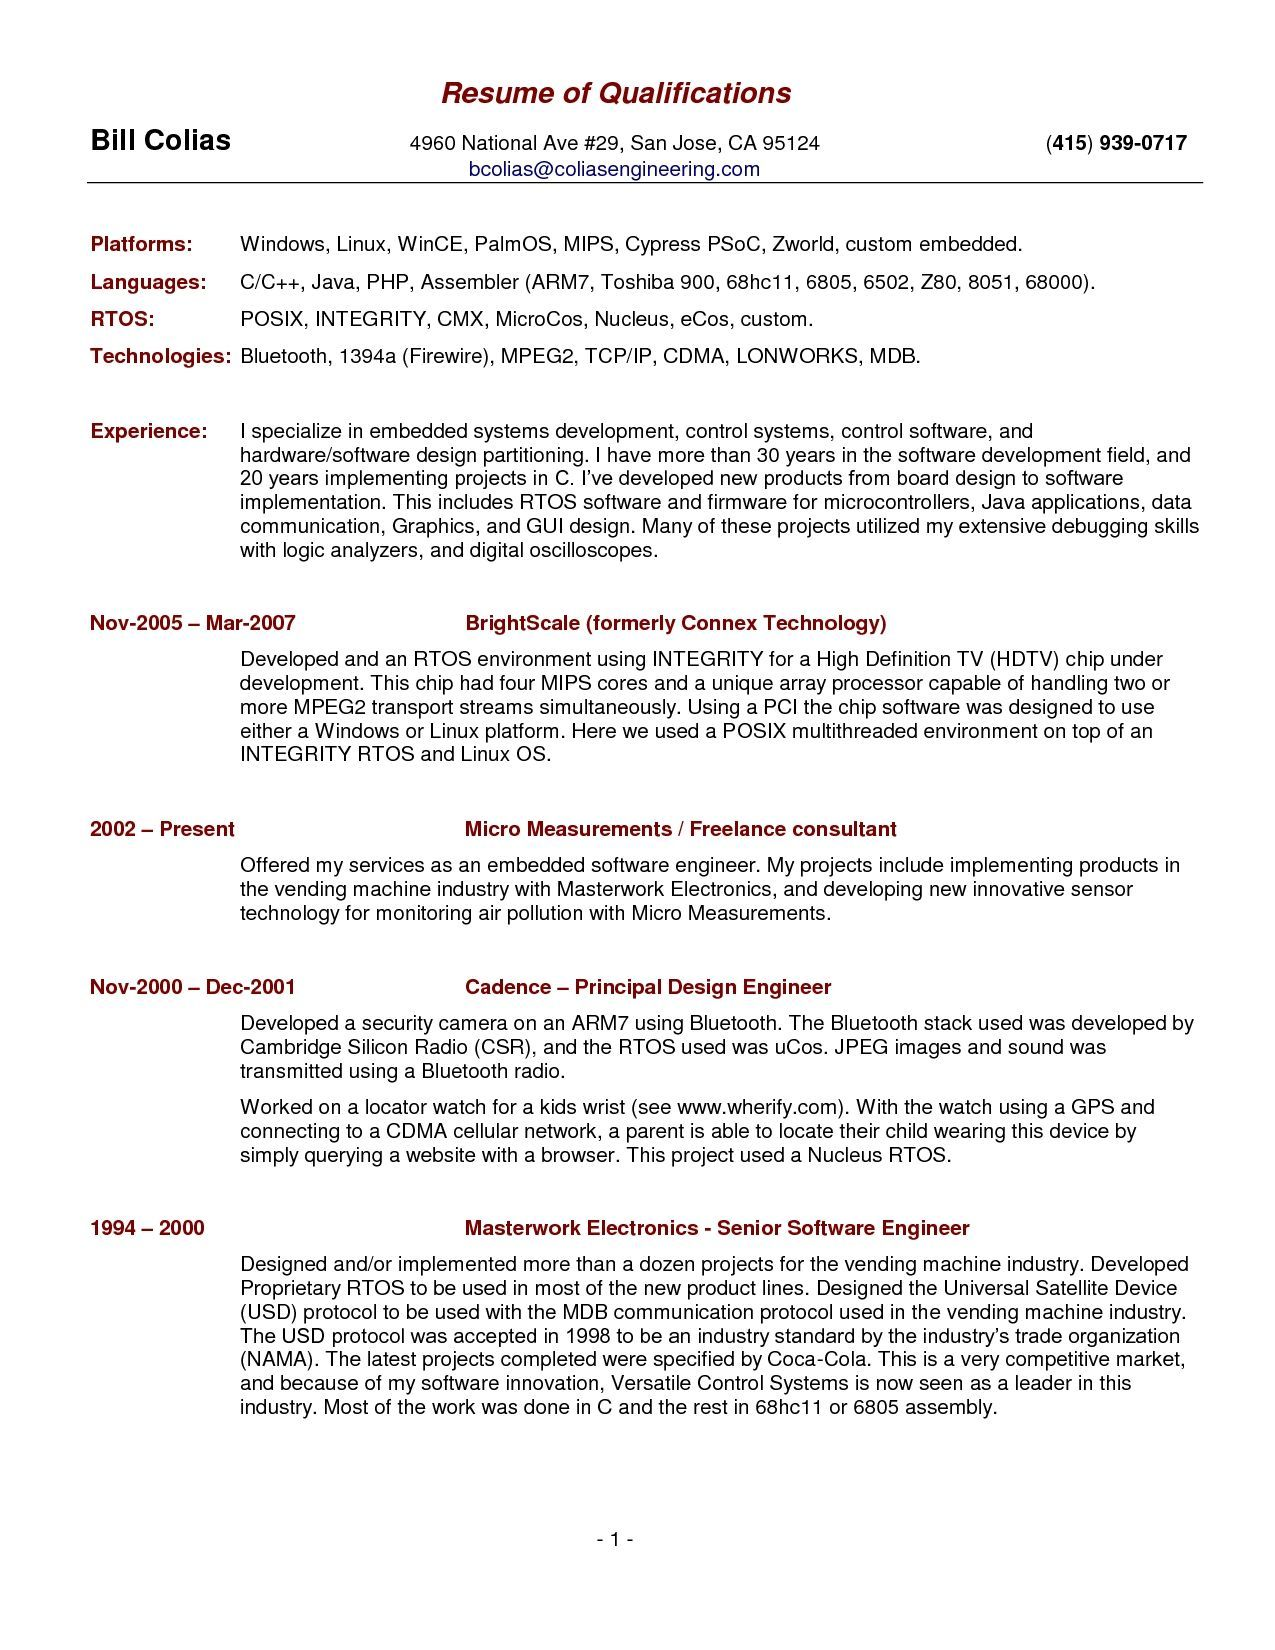 Qualifications Resume Examples Basic Resume Resume Templates